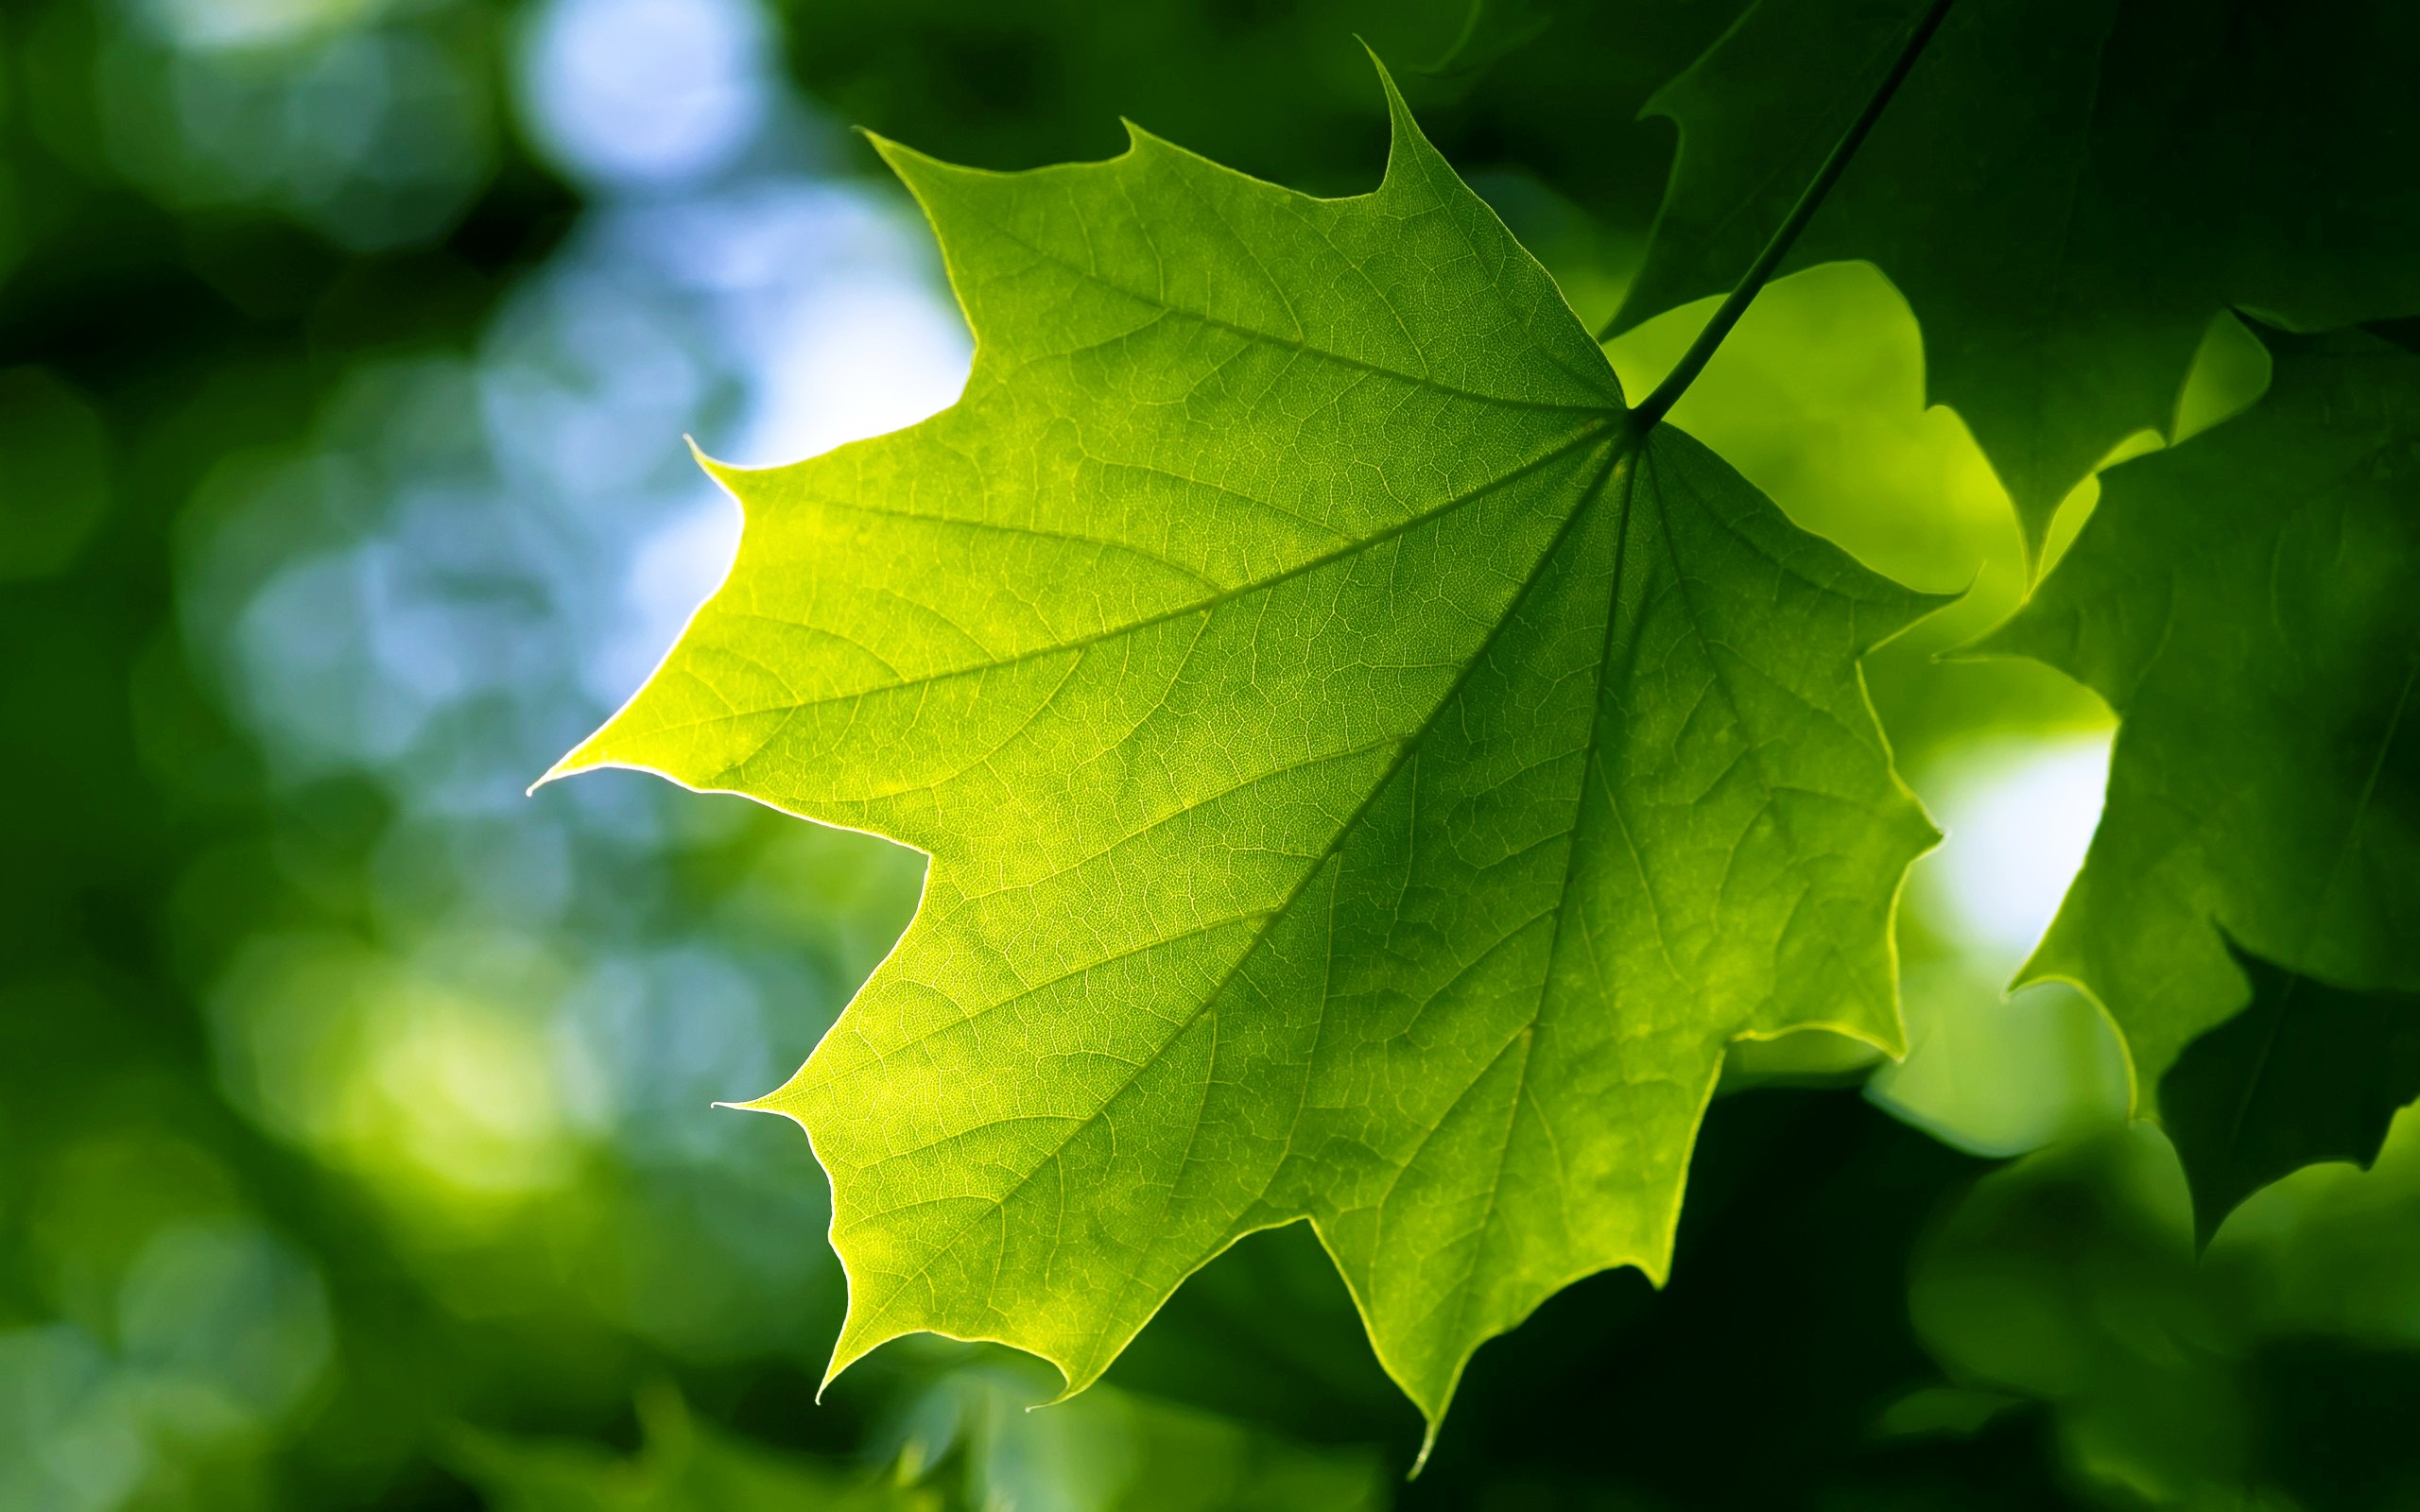 Free Download Green Leaf Wallpapers Hd Wallpapers 2560x1600 For Your Desktop Mobile Tablet Explore 71 Leaf Wallpaper Fall Leaves Wallpaper Toronto Maple Leafs Wallpaper 2015 Banana Leaf Wallpaper